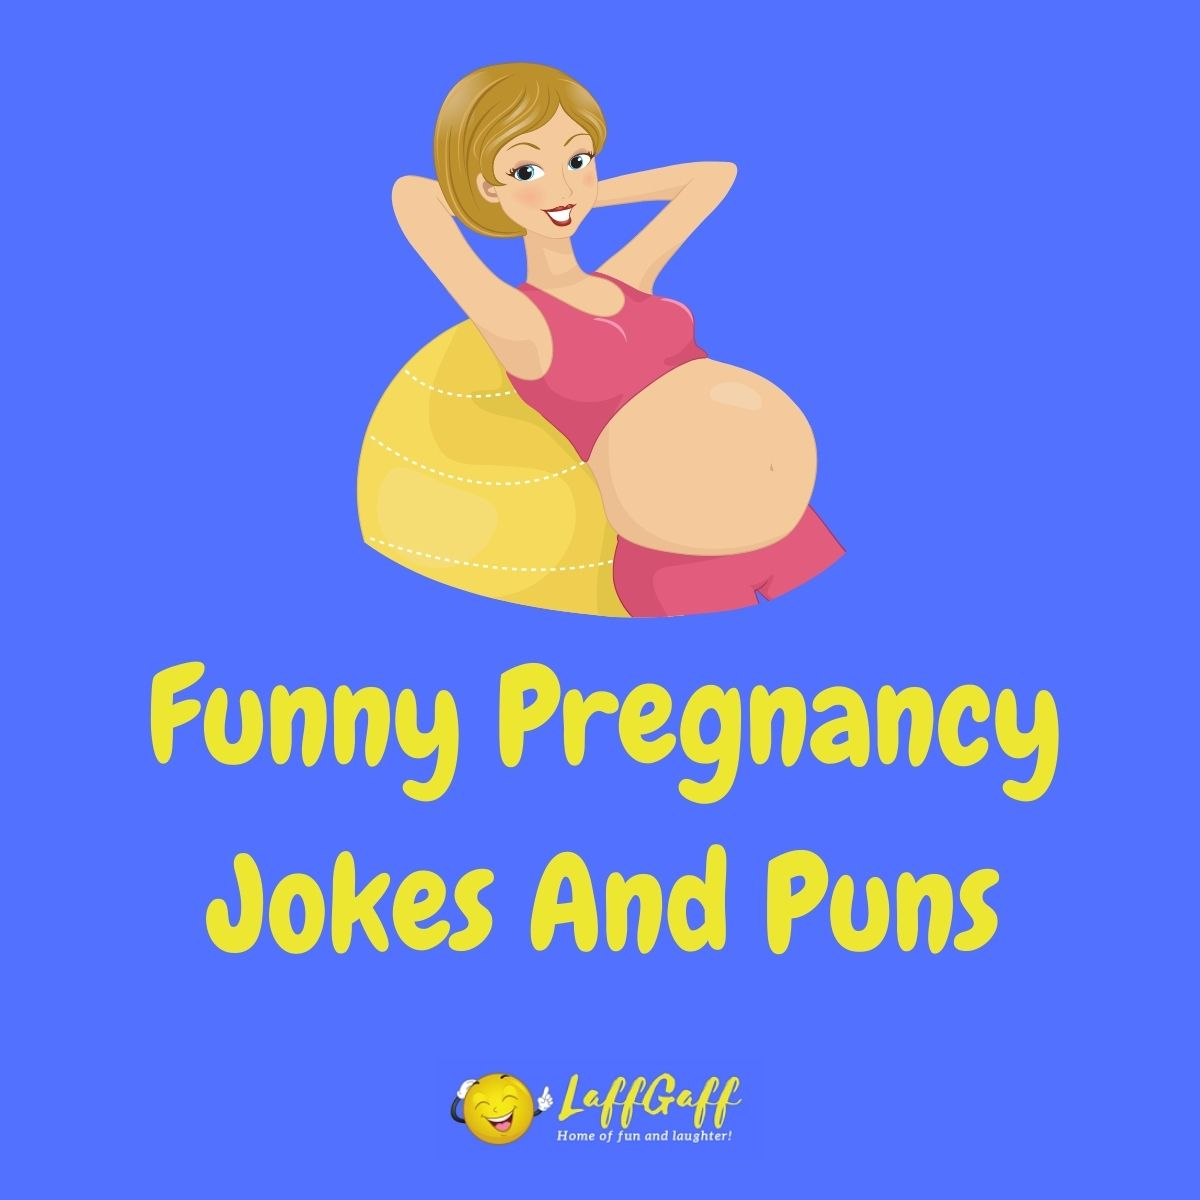 Featured image for a page of funny pregnancy jokes and puns.